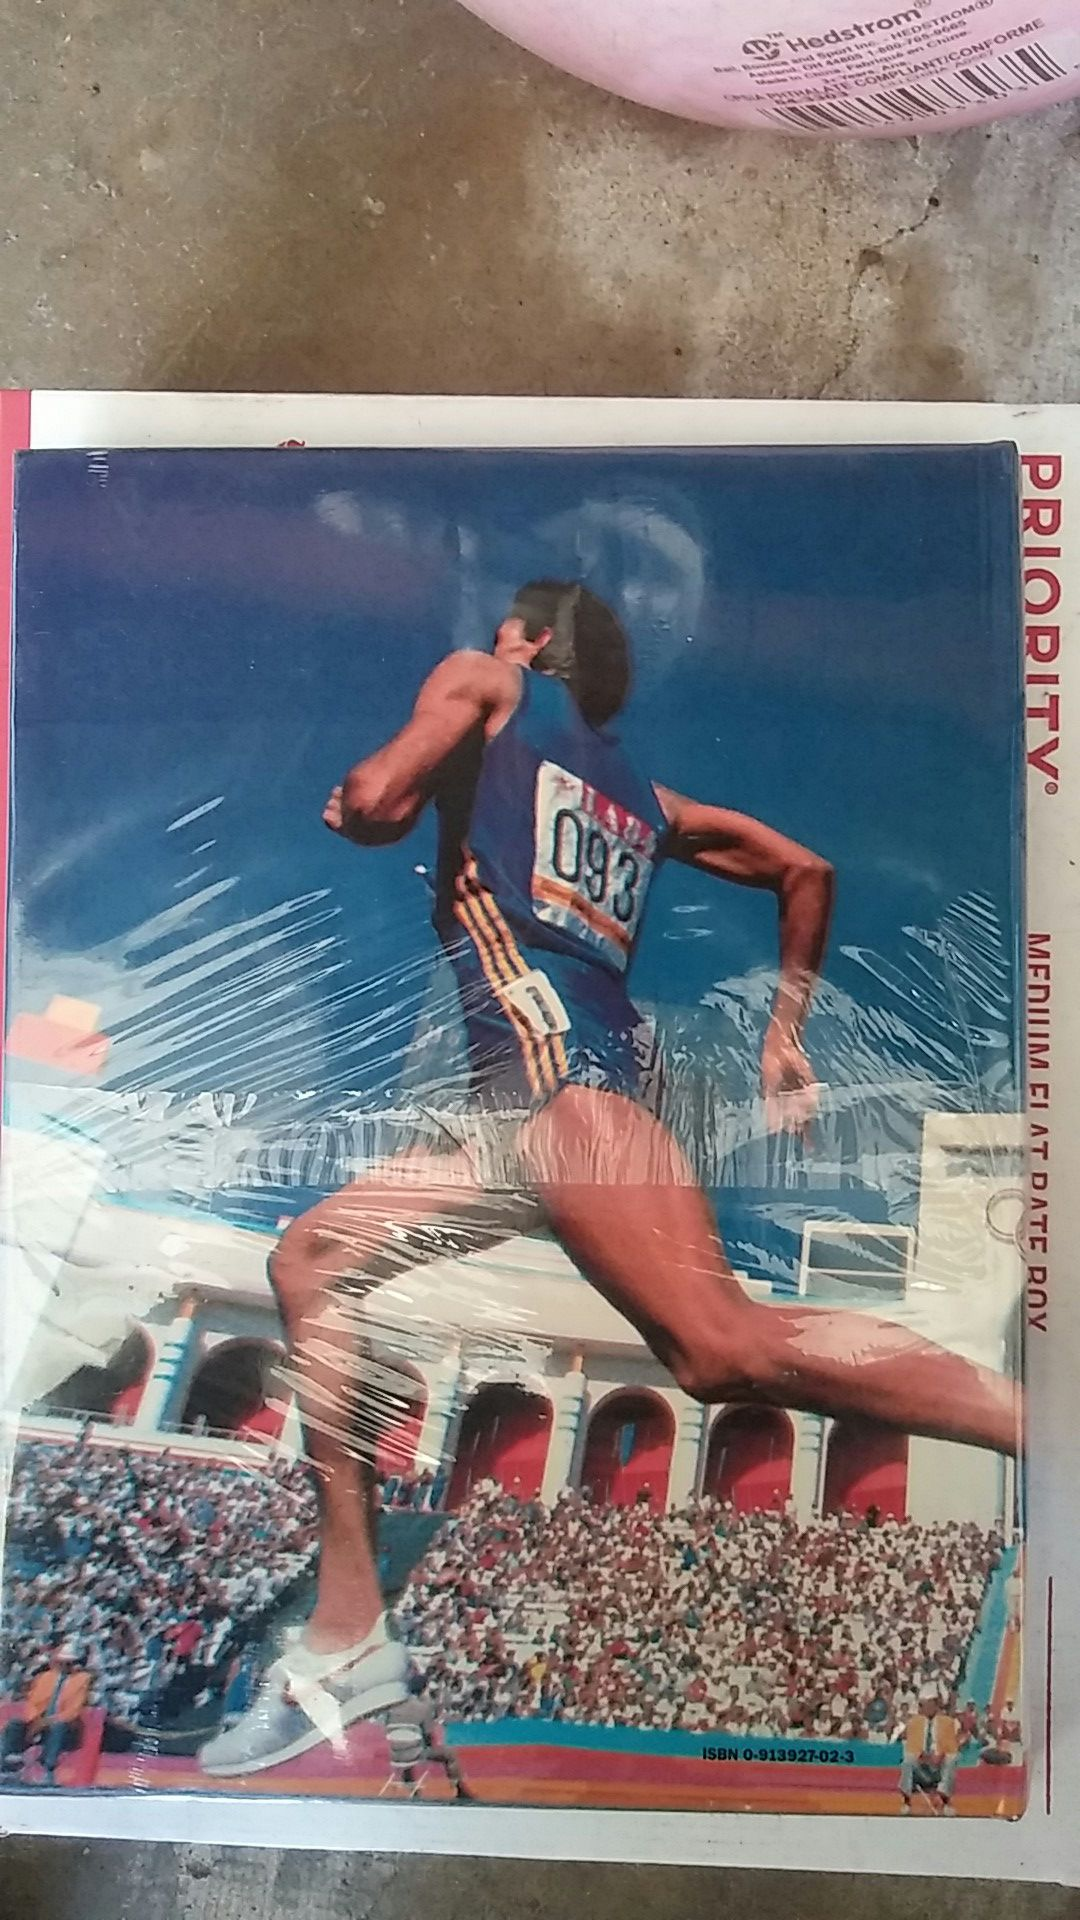 1984 Los Angeles Olympic games Commemorative book